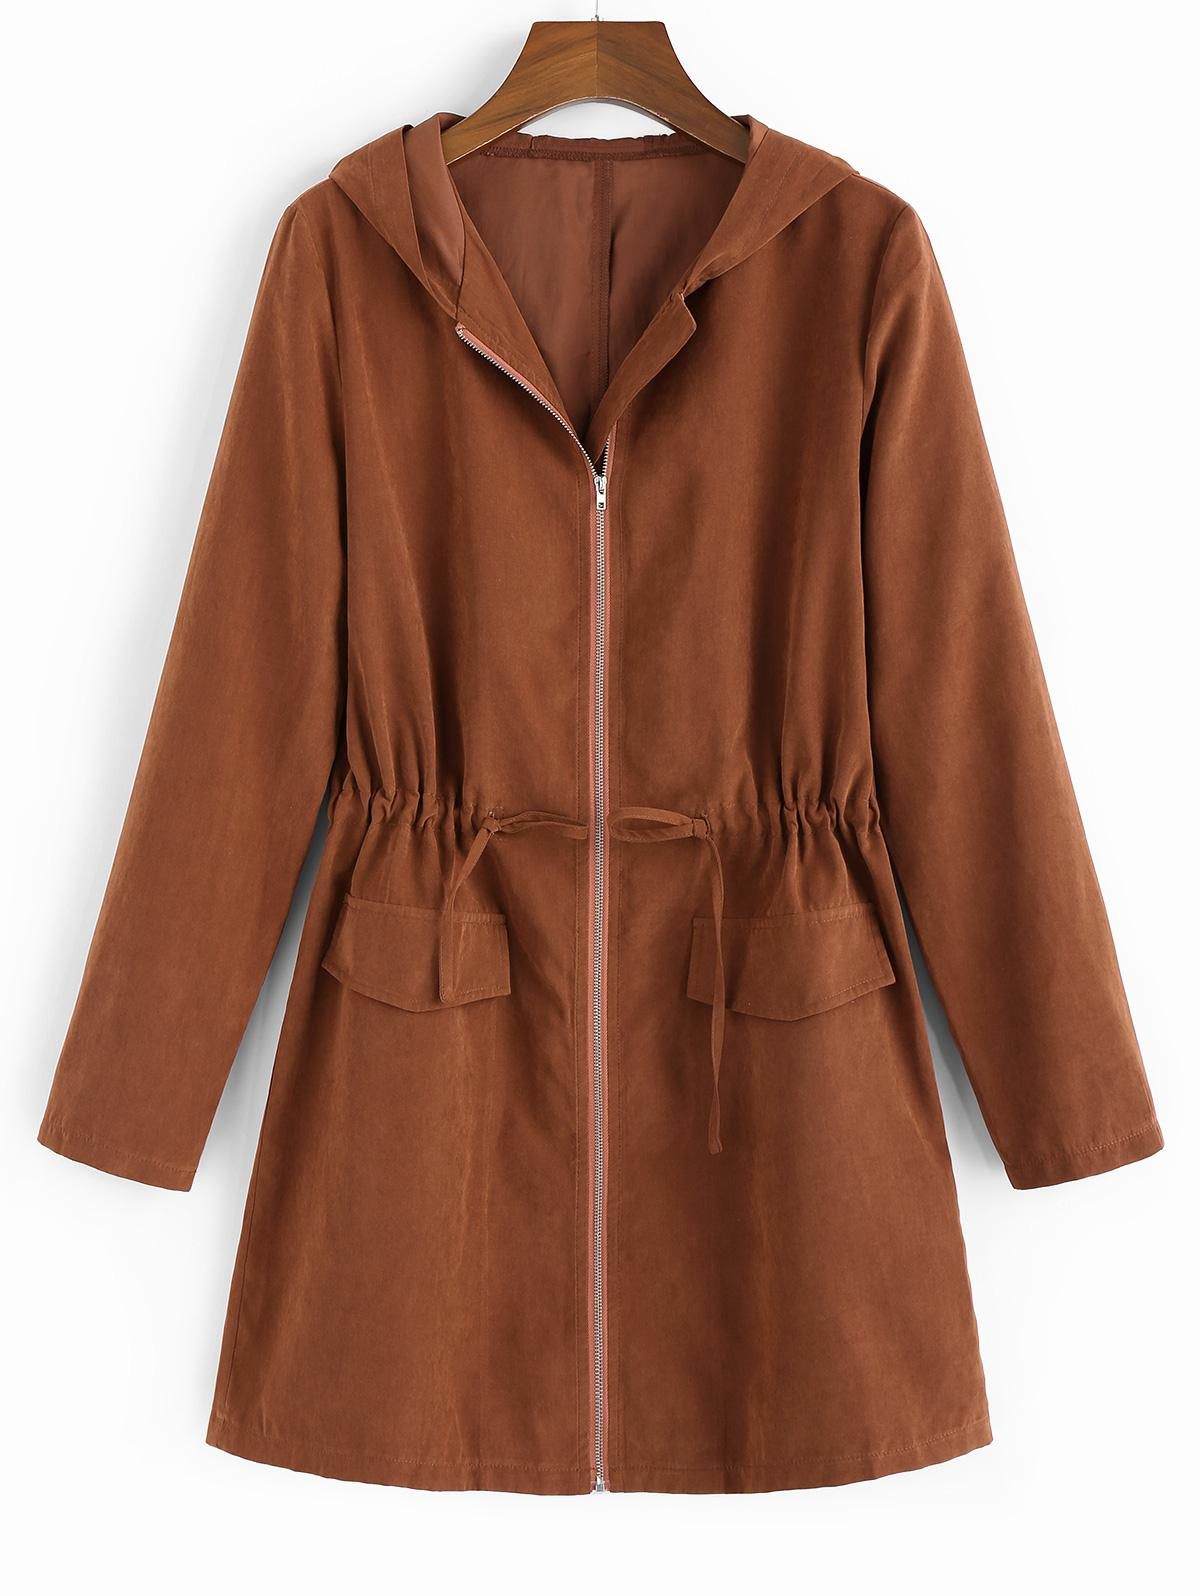 ZAFUL Hooded Waist Drawstring Coat